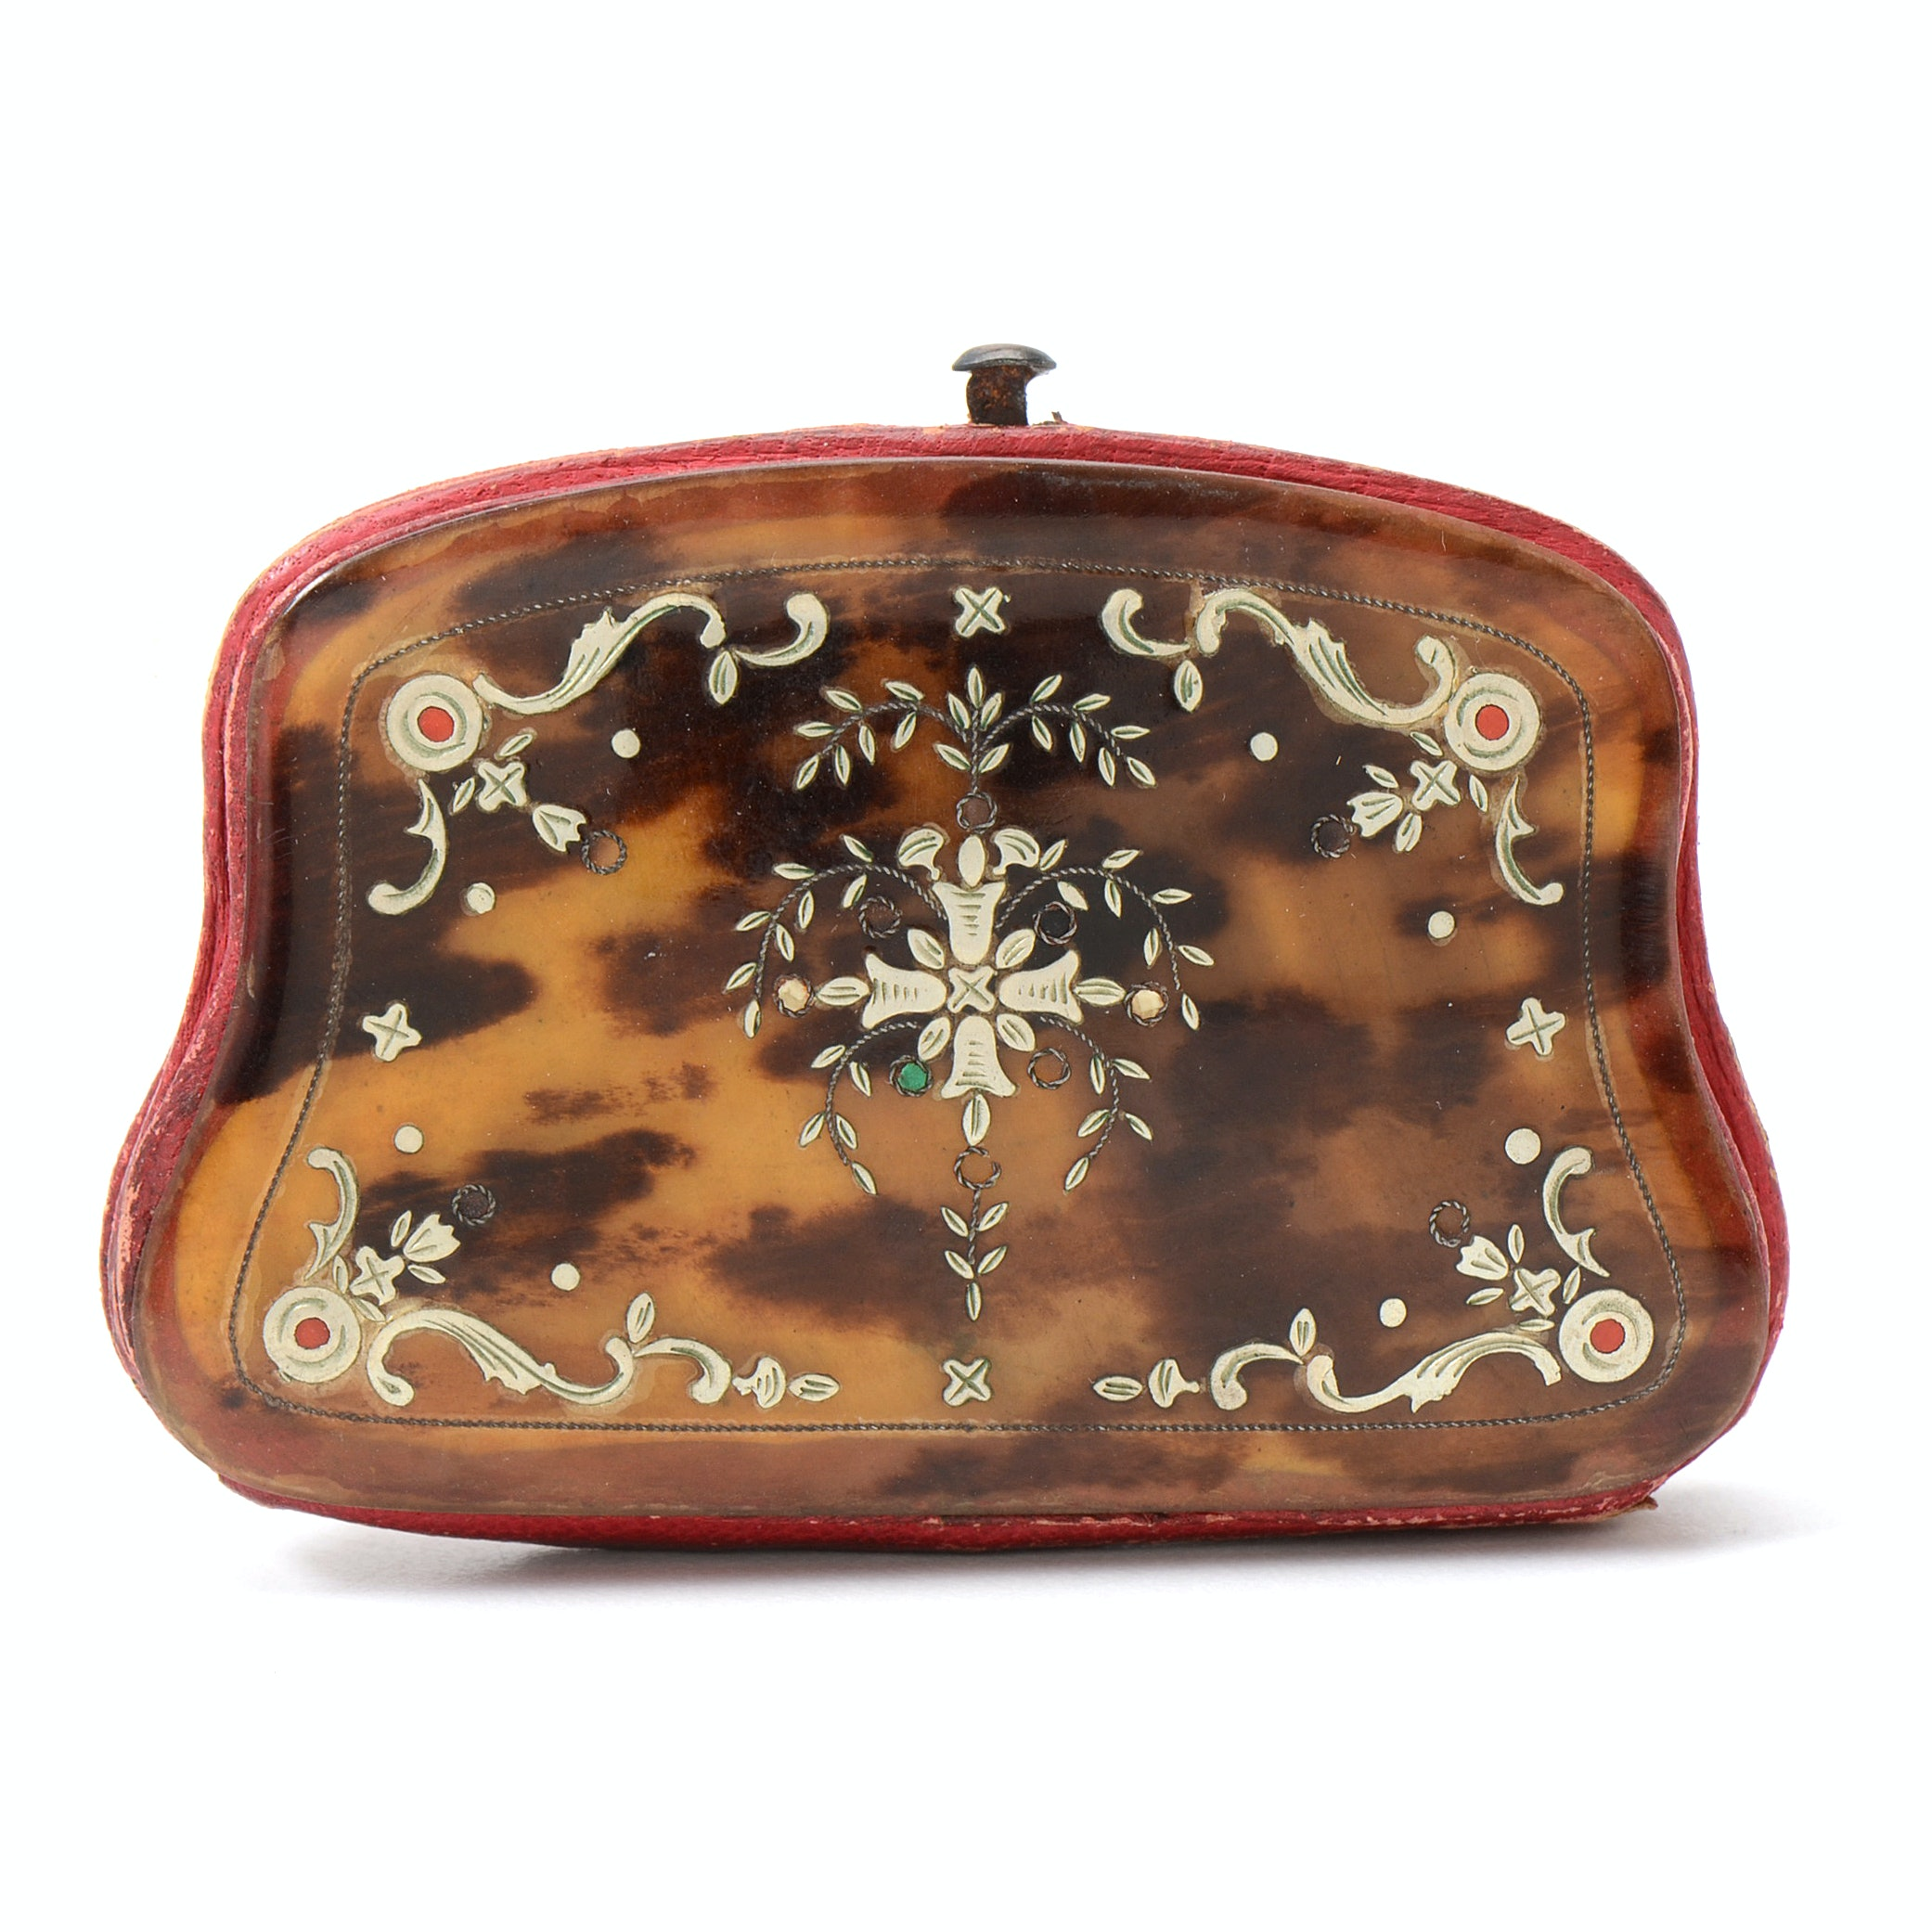 Early 20th-Century Tortoise Shell Coin Purse